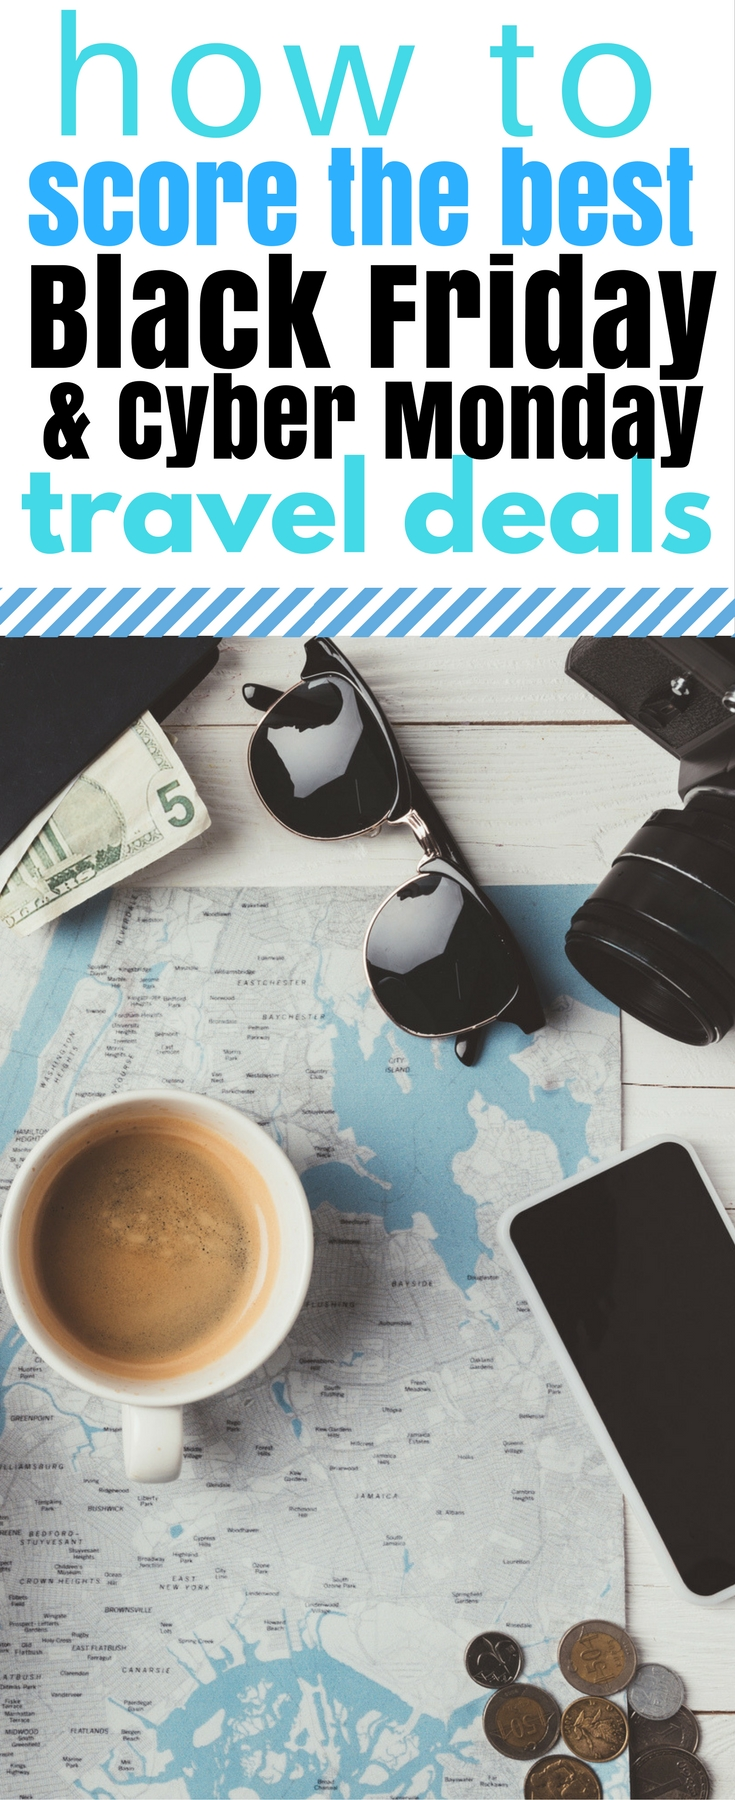 how to get the best black friday travel deals and cyber money travel deals. Best ways to save money on vacations. #vacation #savemoney #blackfriday #cybermoney